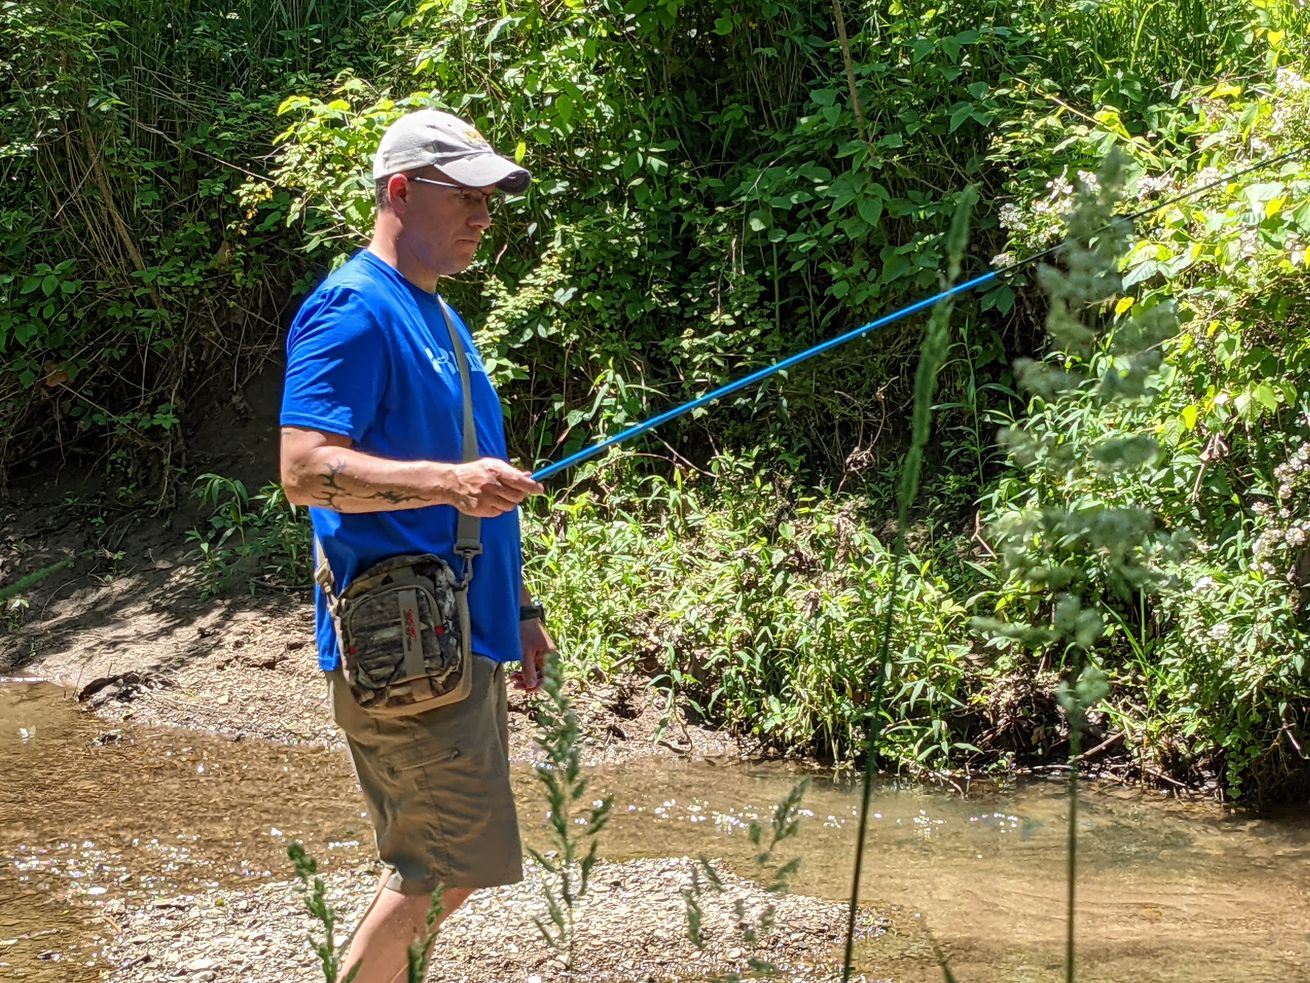 Illinois fisheries chief Mike McClelland microfishes a small stream in Schuyler County. Credit: Dale Bowman